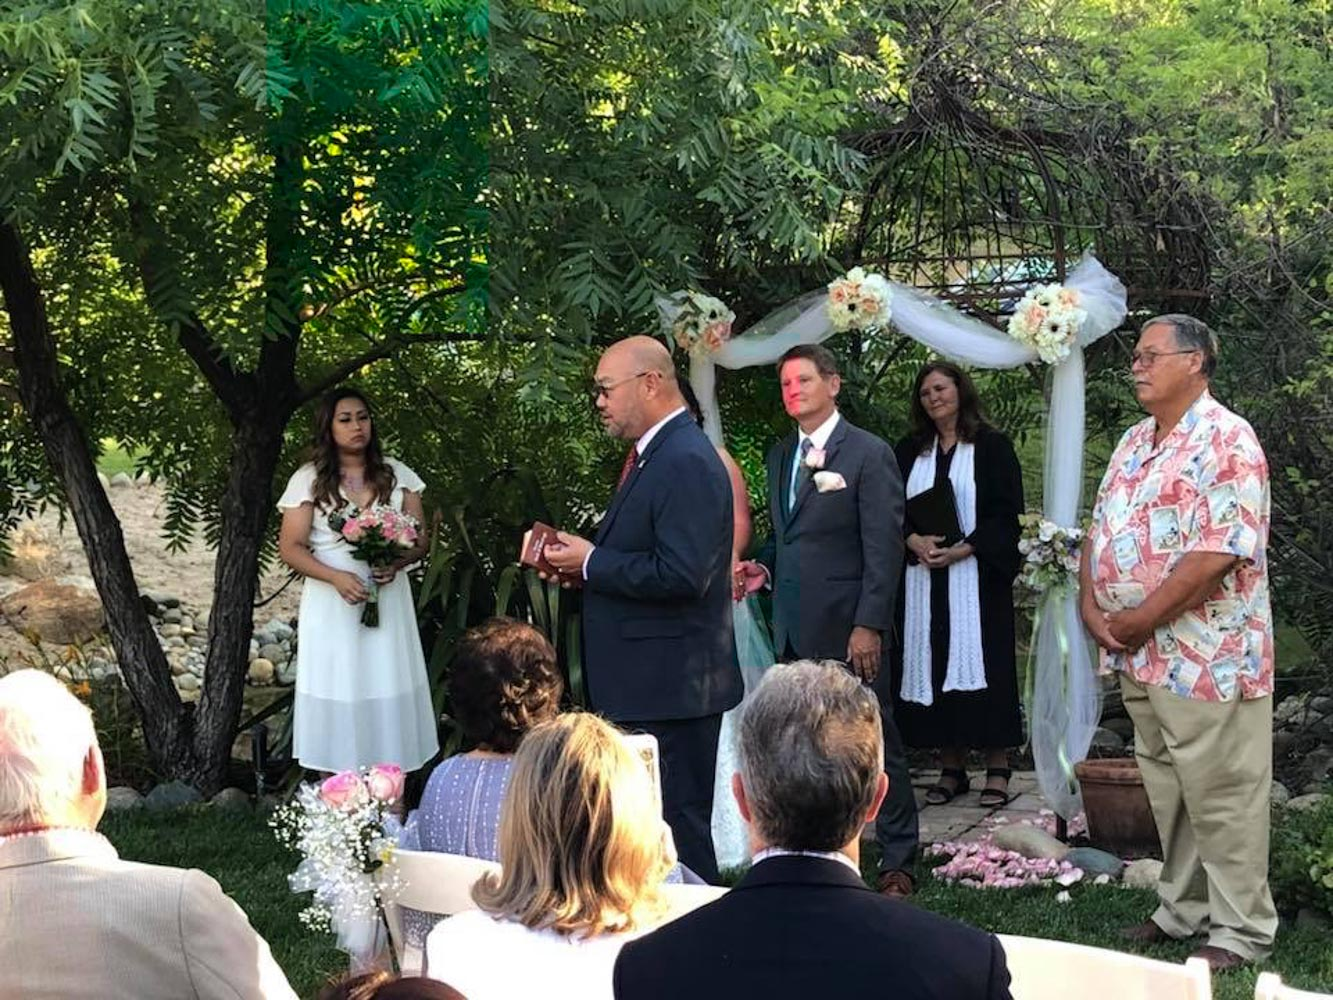 Standing man speaking to wedding guests, with bride, groom and officiant standing in background.